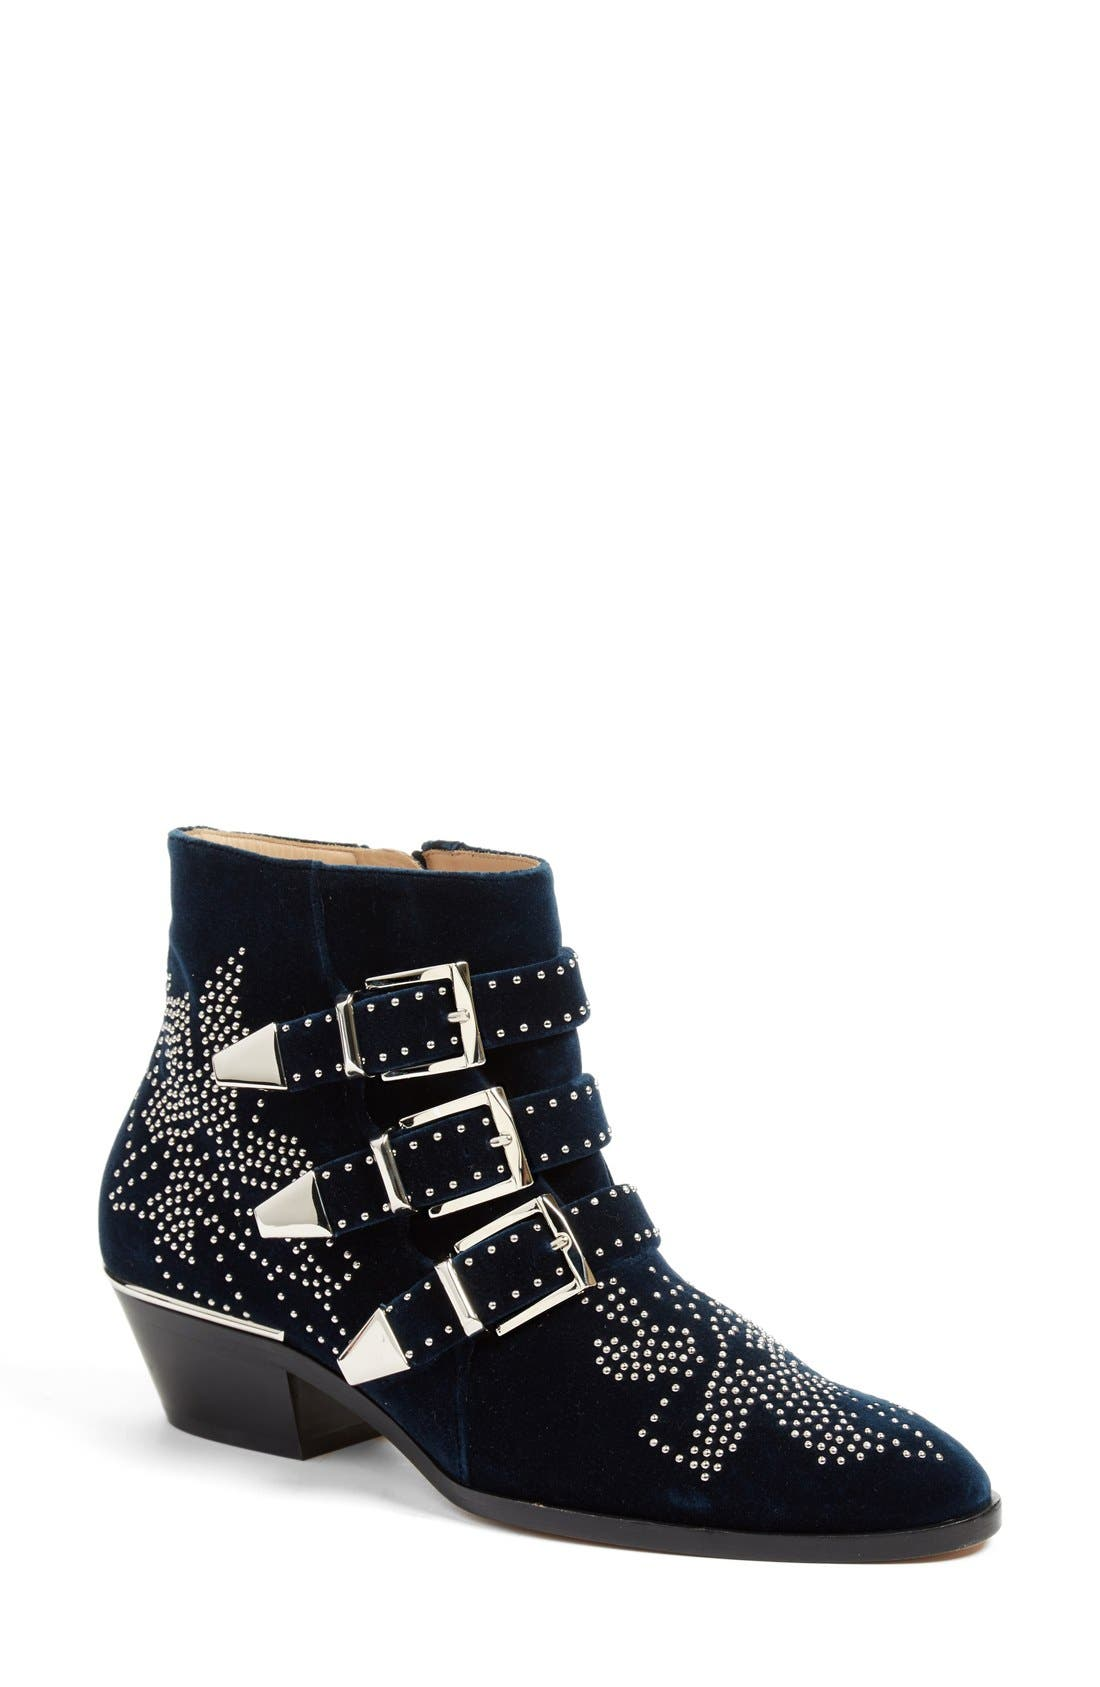 Alternate Image 1 Selected - Chloé 'Susan' Studded Buckle Boot (Women)